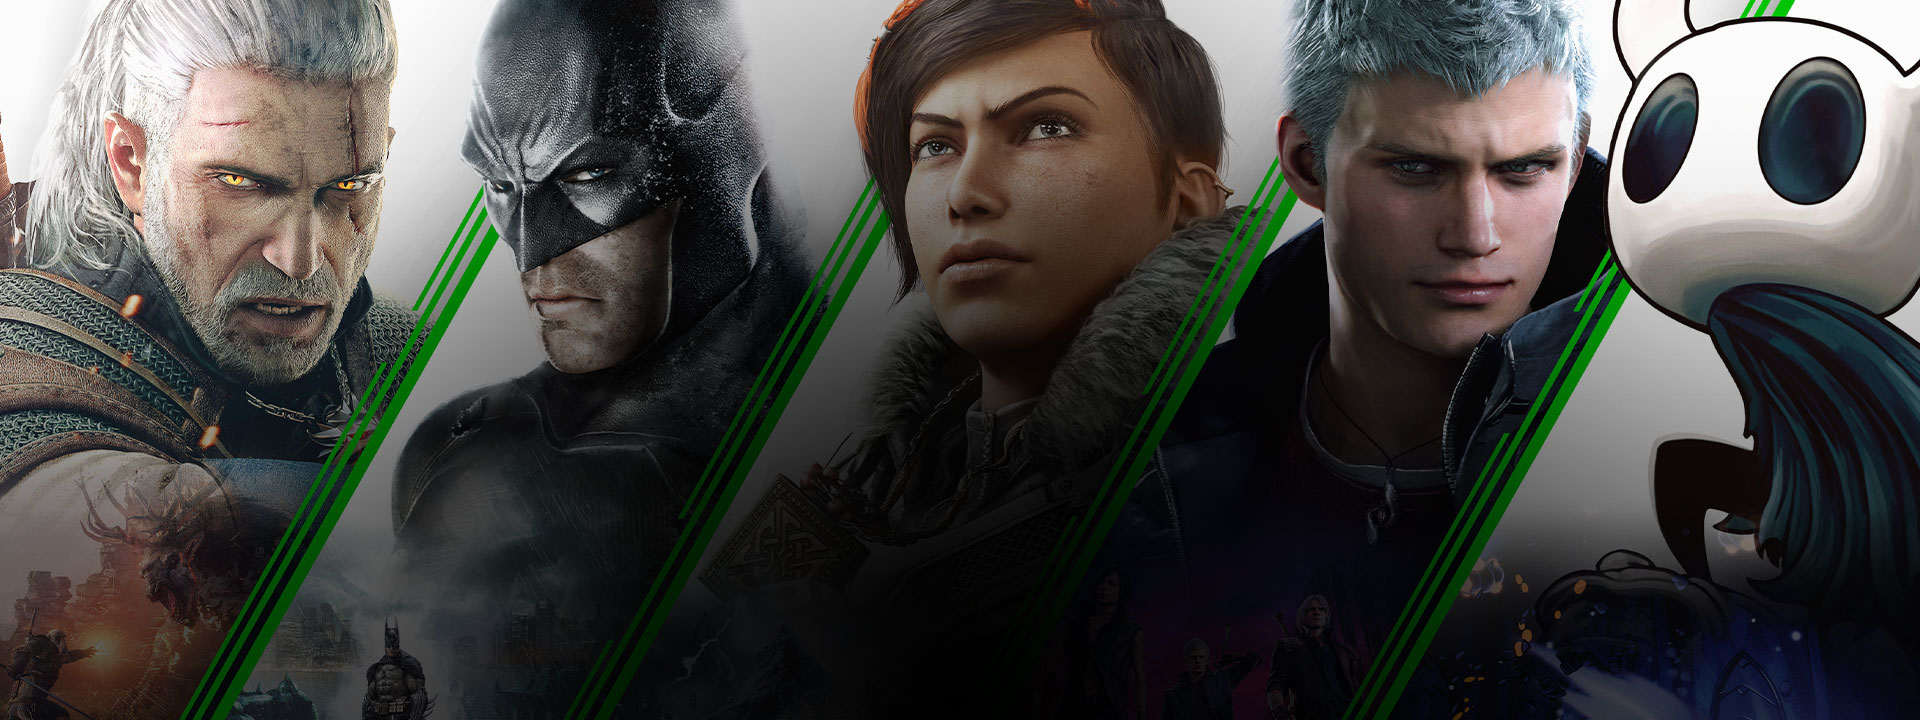 En collage av spill tilgjengelig på Xbox inkludert The Witcher 3: Wild Hunt, Batman (Arkham Series), Gears 5, Devil May Cry 5, og Hollow Knight.